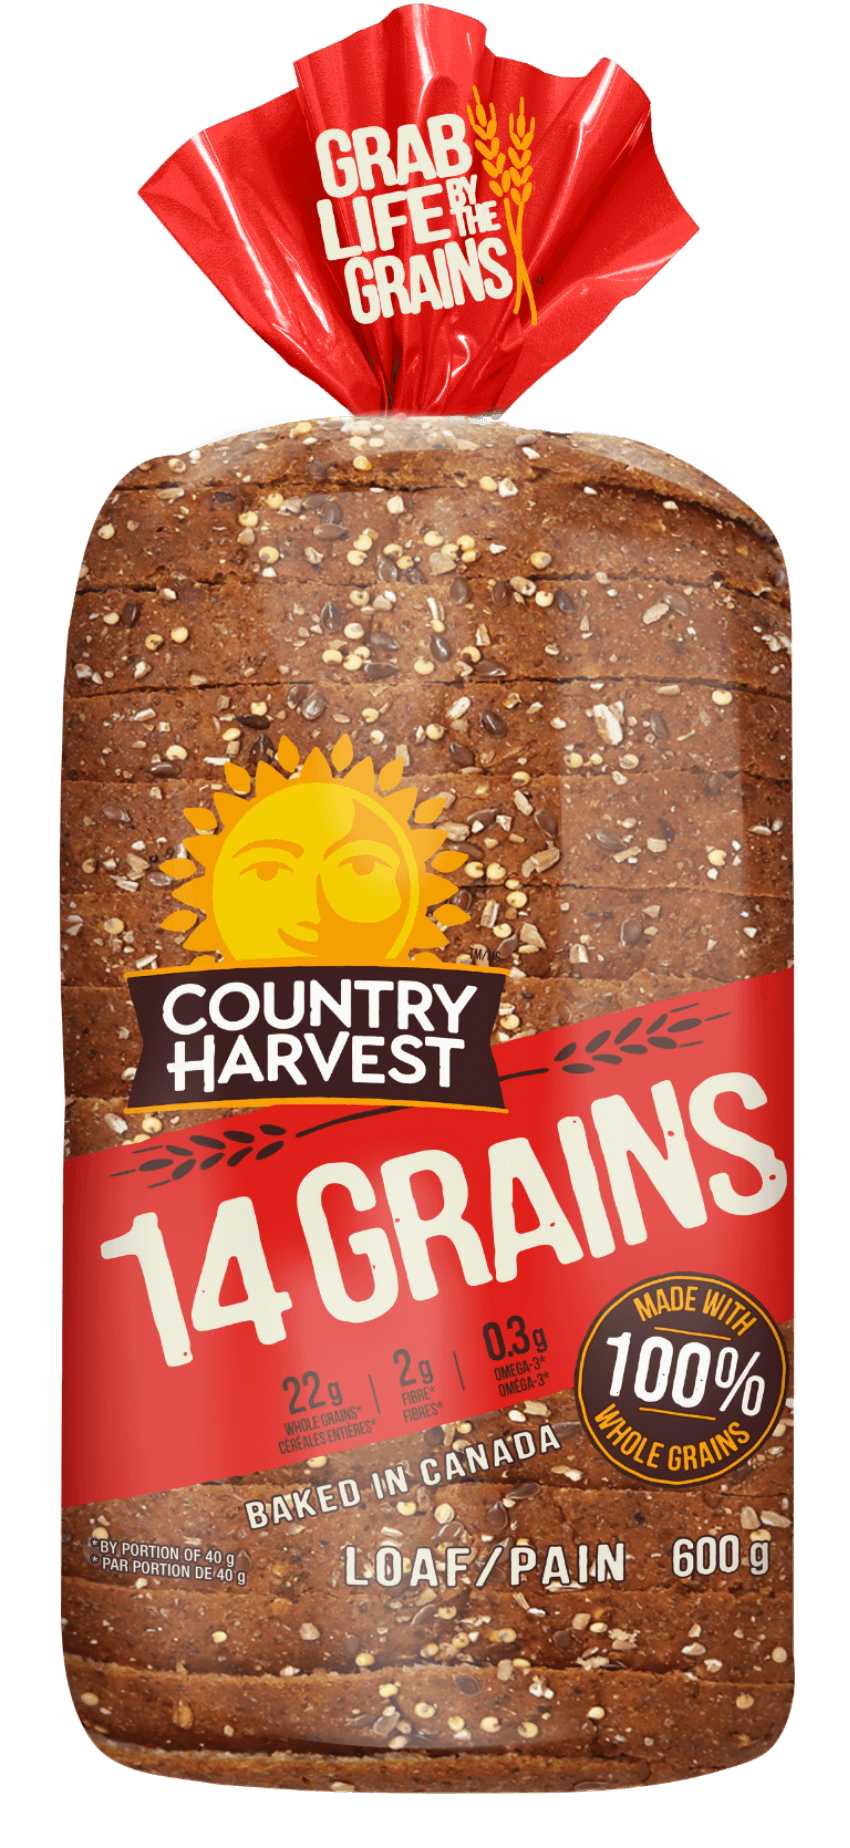 Country-Harvest-14-Grains-Pack